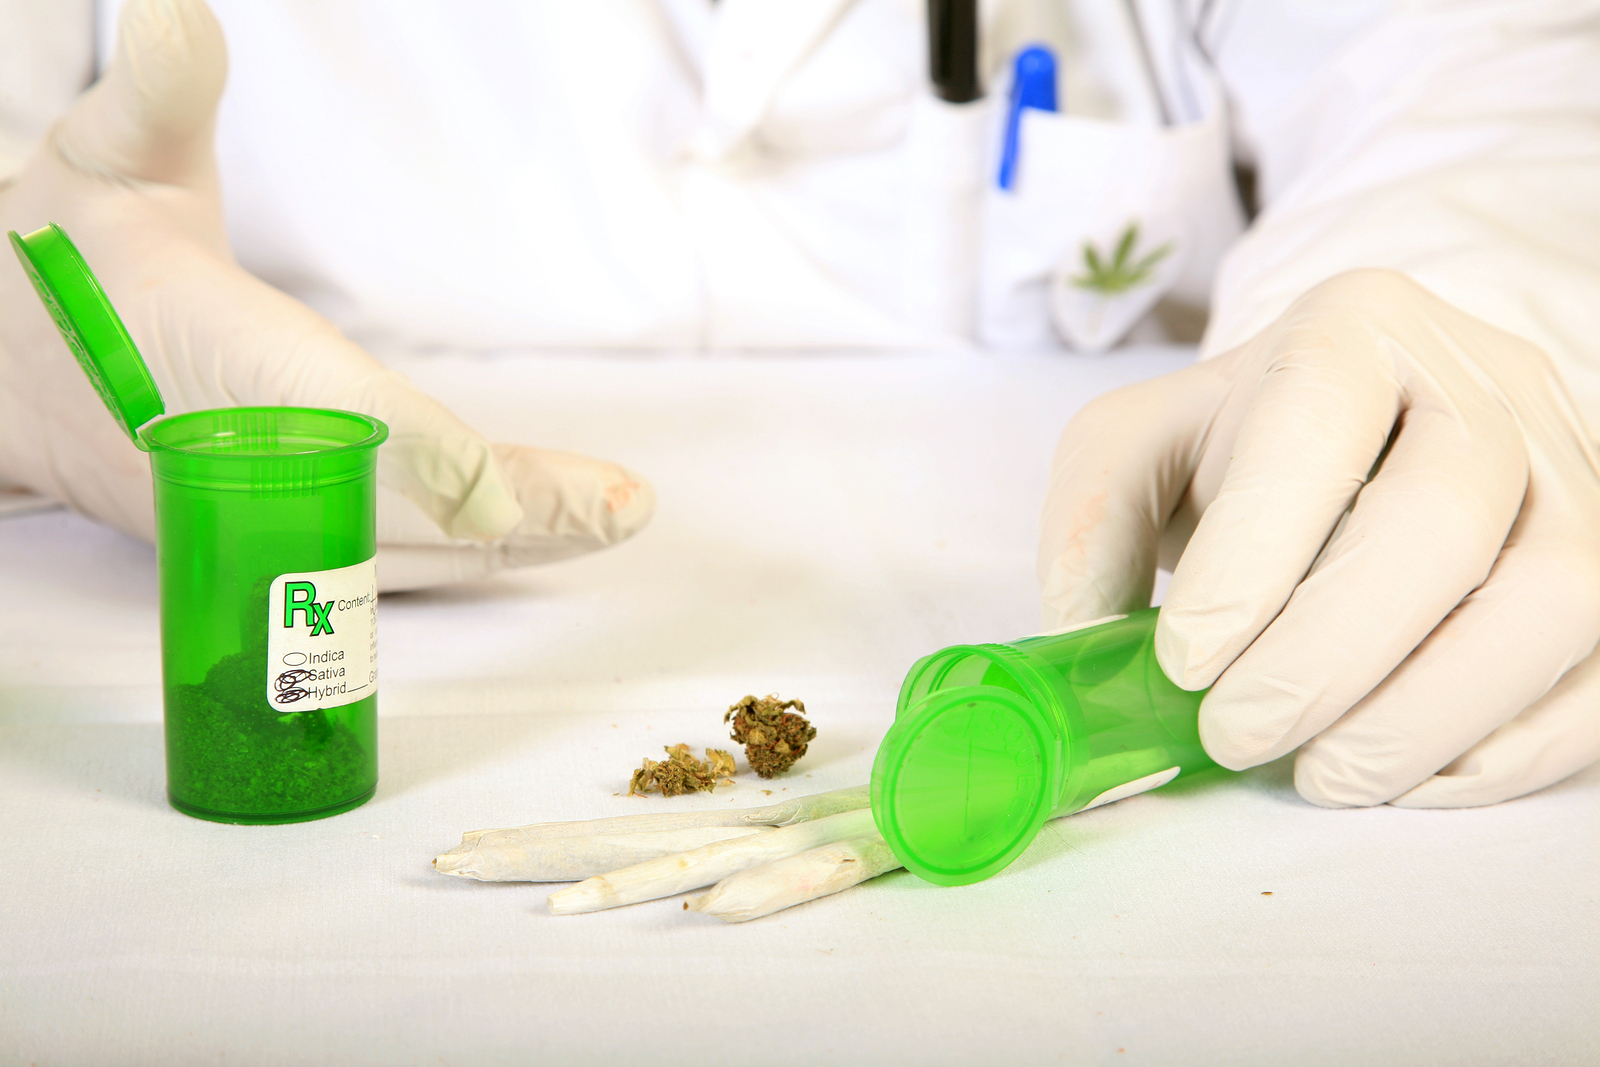 Cannabis pass a Drug Test